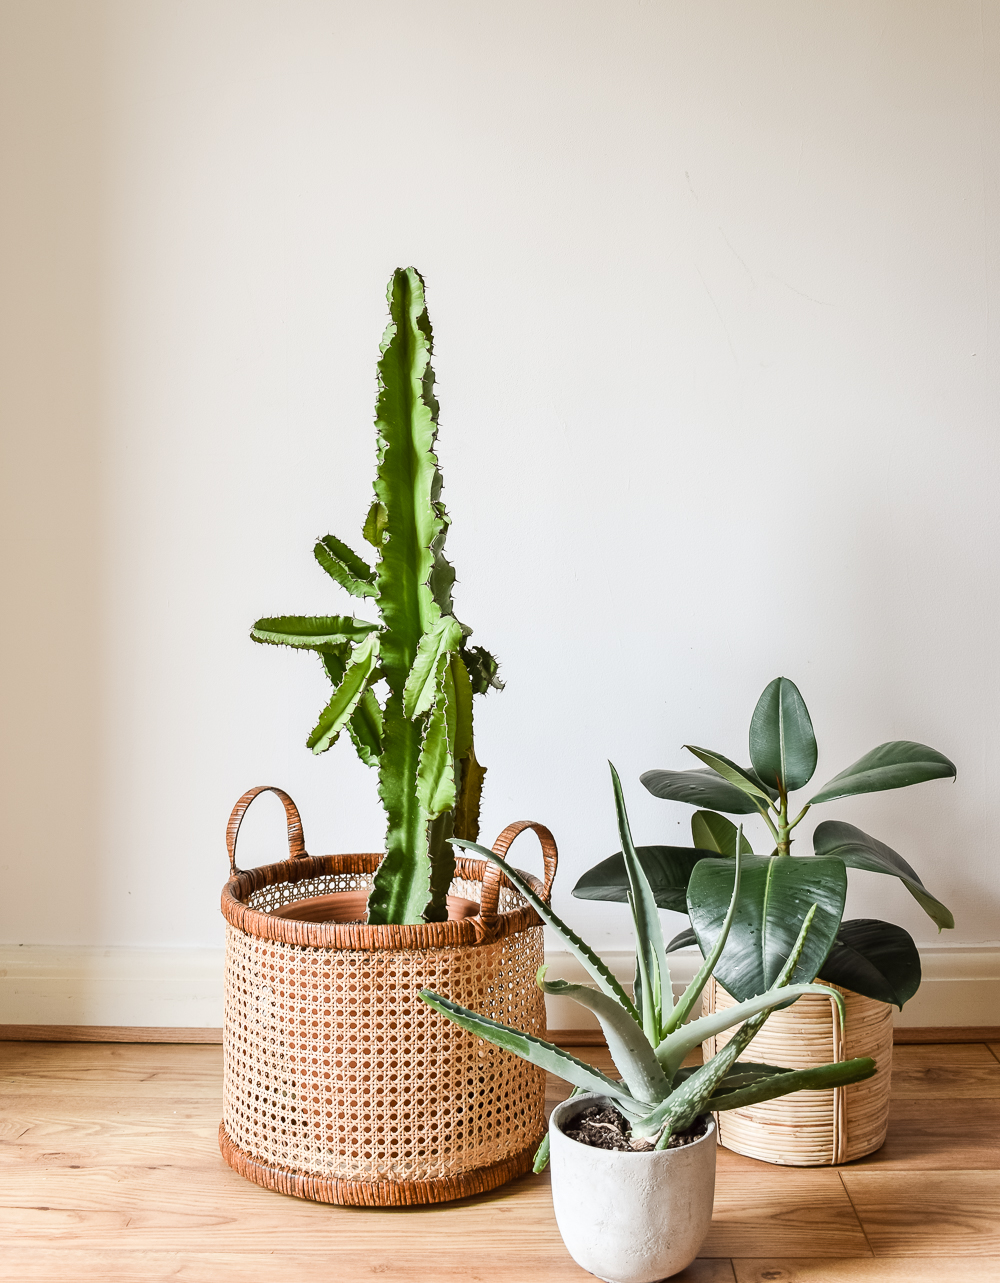 3 plants on floor. One large cactus, aloe vera, and succulent